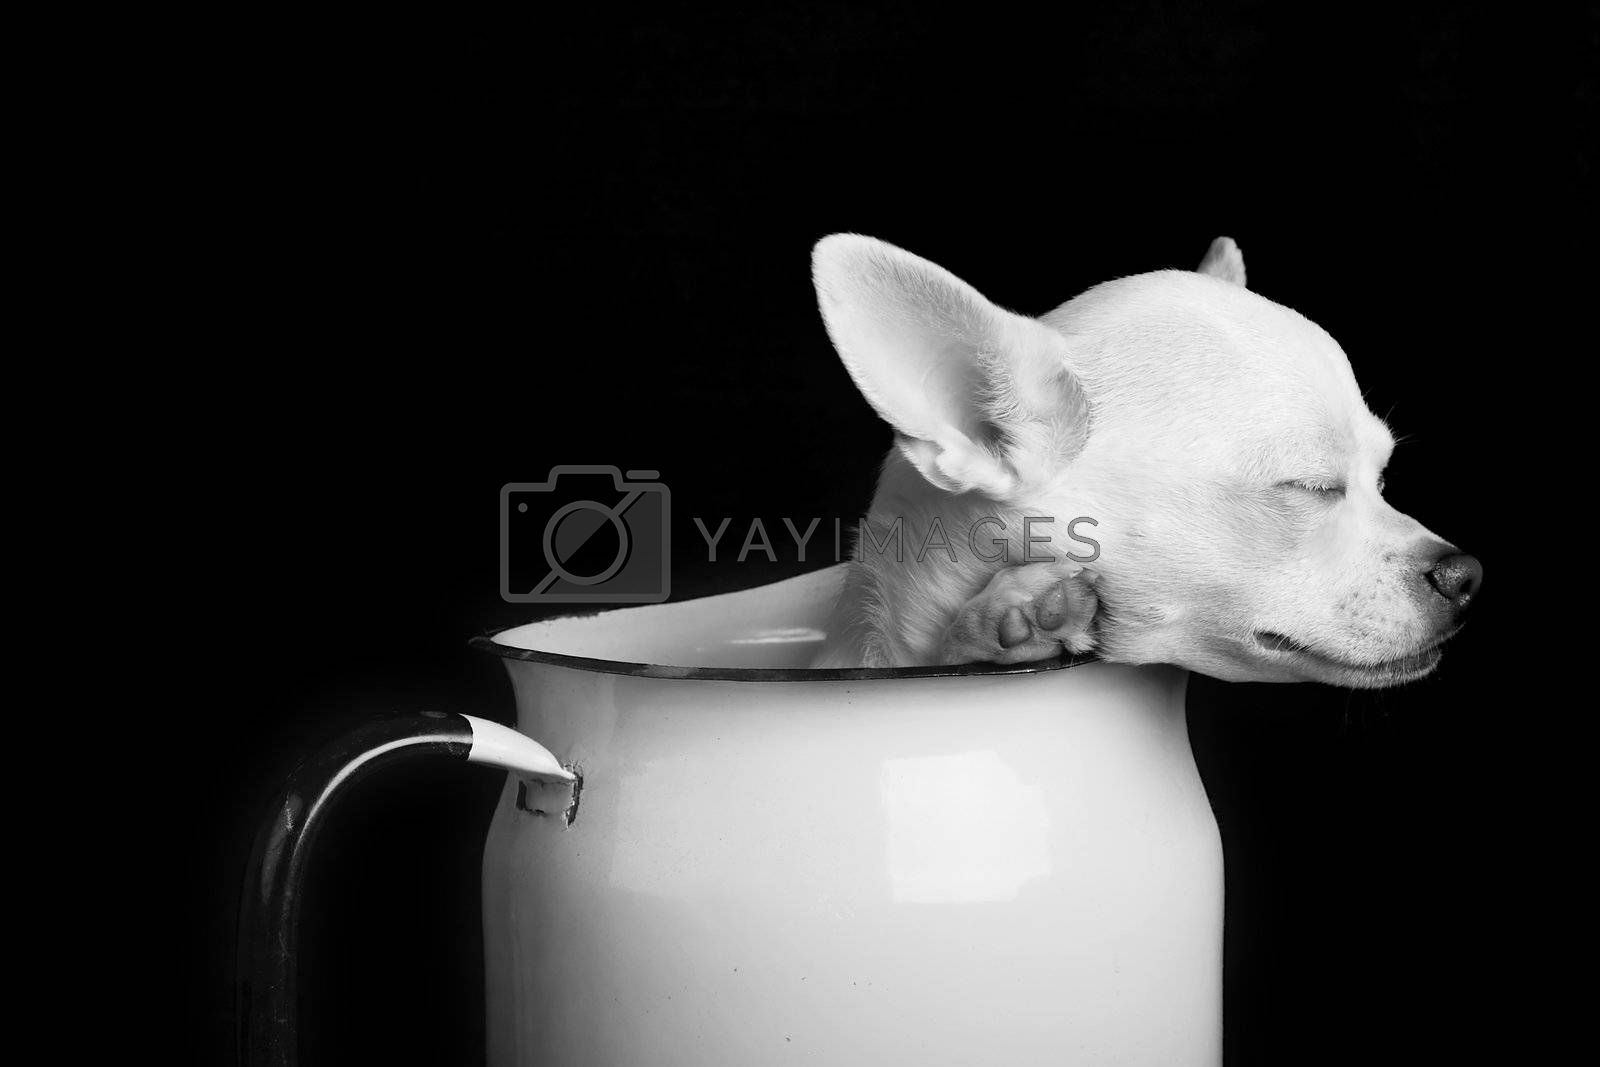 A chihuahua resting in Black and White